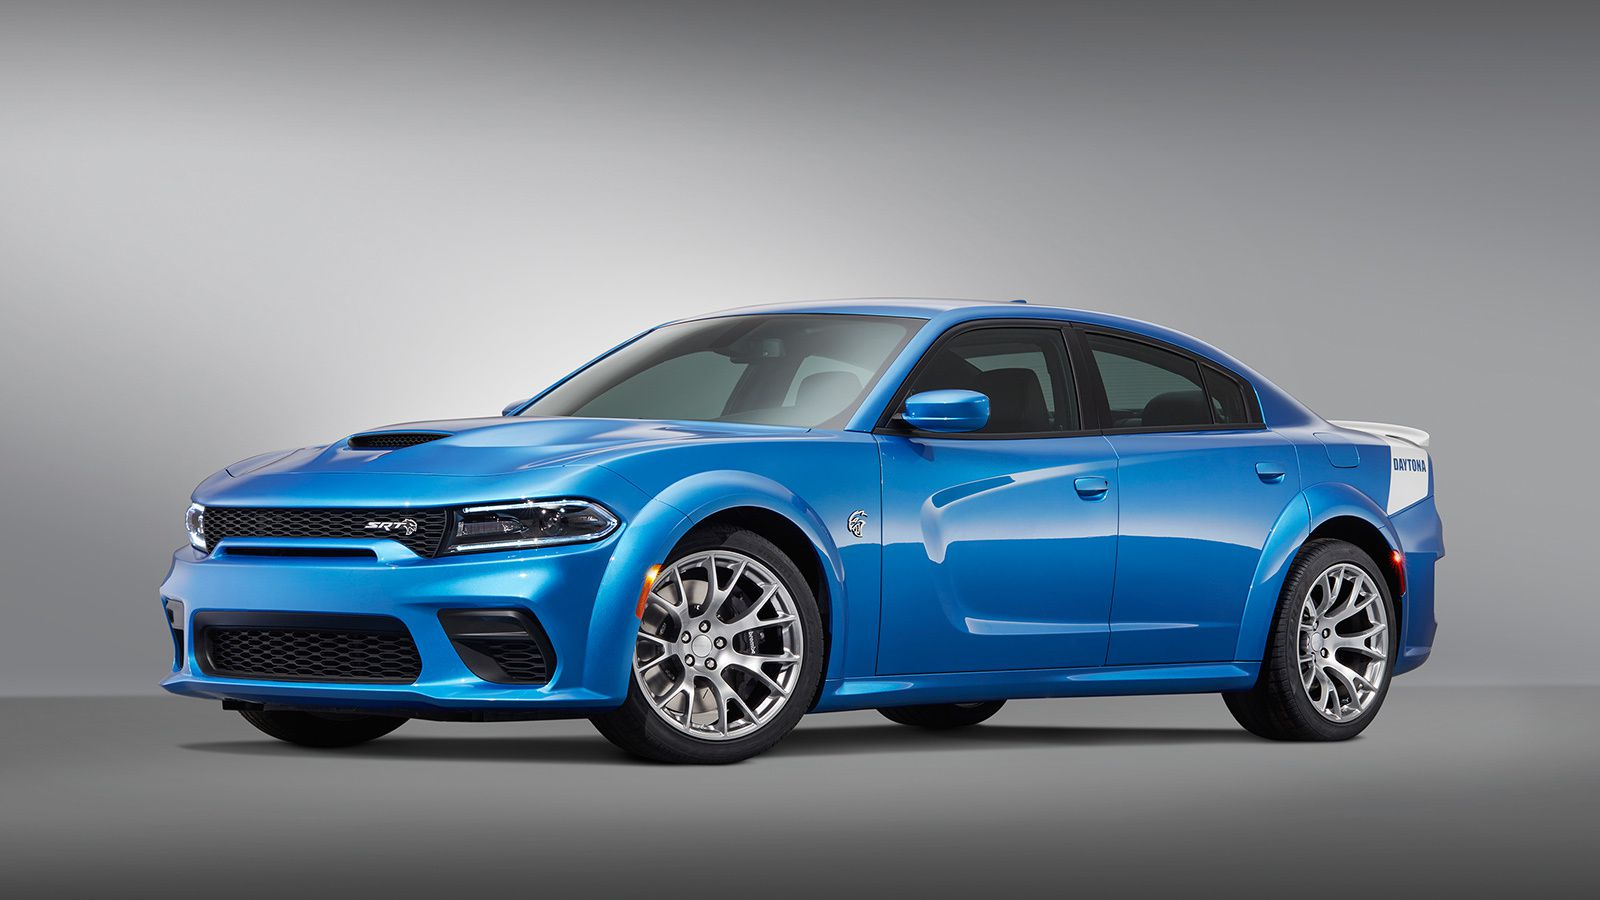 Dodge Charger SRT Hellcat Widebody Daytona 50th Anniversary Edition 2020 : OUI !